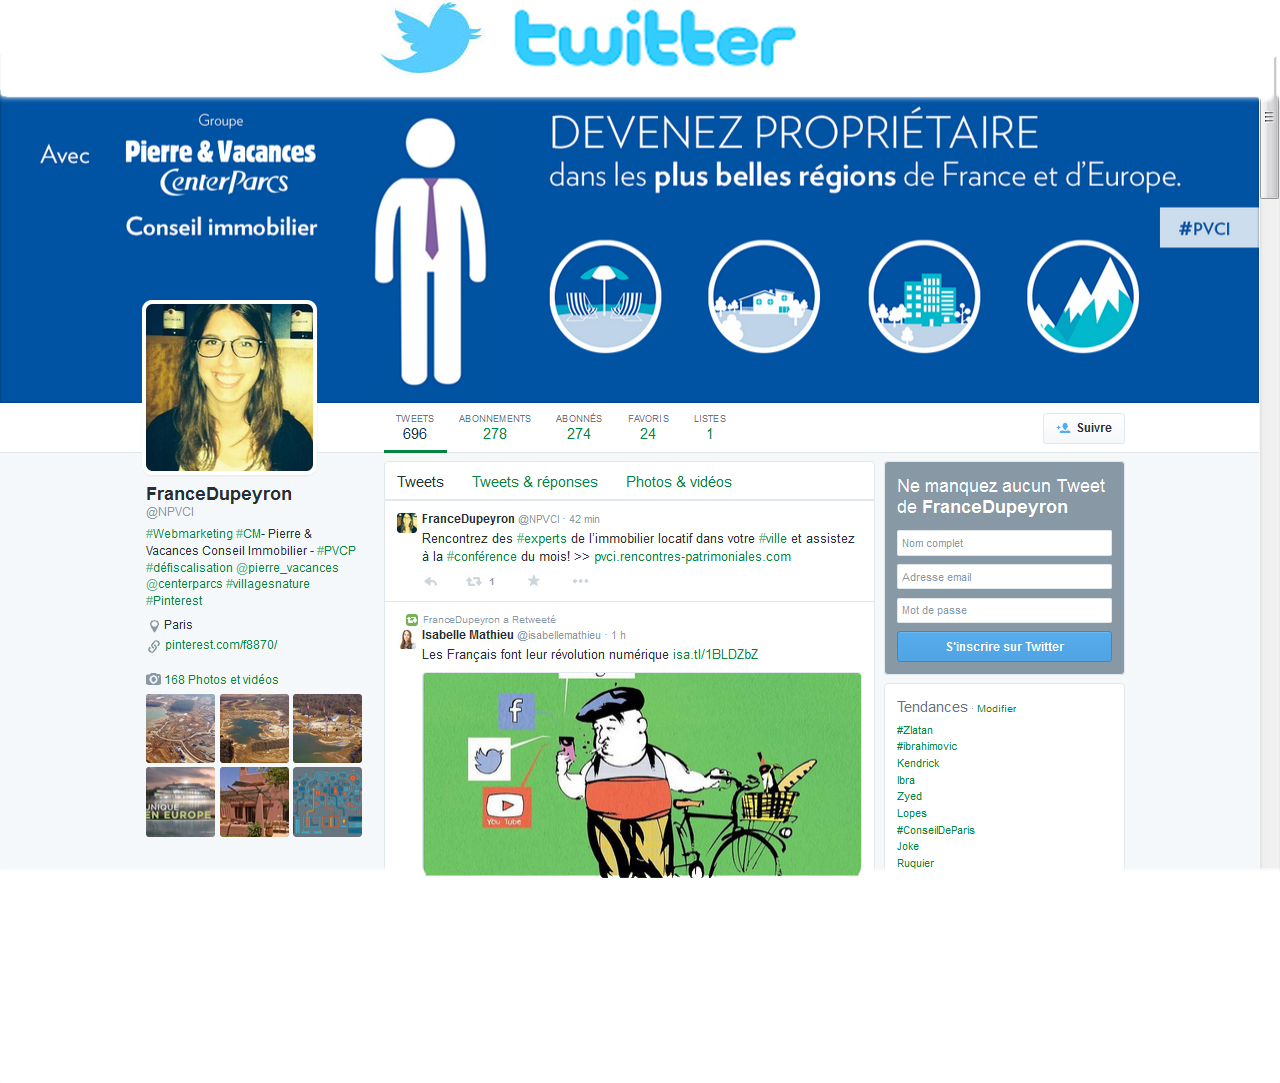 Pierre & Vacances Property Investment op Twitter